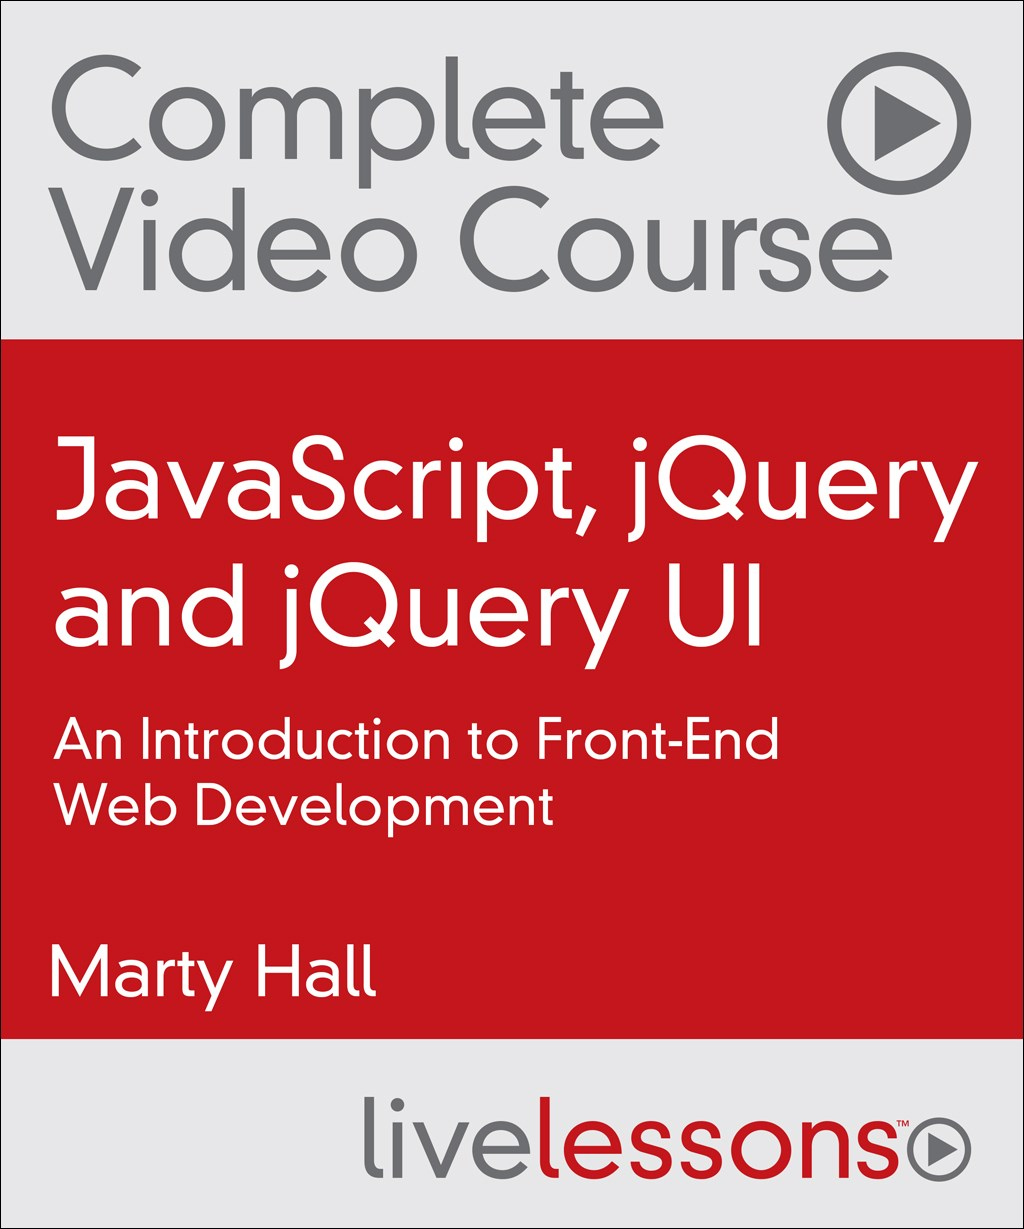 JavaScript, jQuery and jQuery UI Complete Video Course: An Introduction to Front-End Web Development